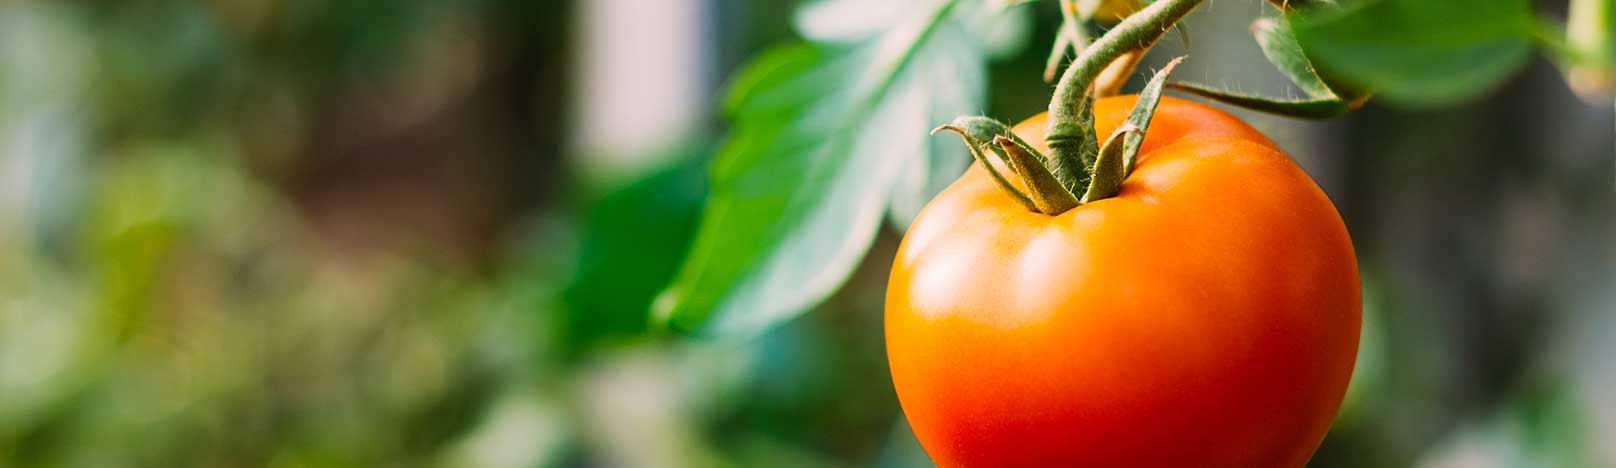 Tomato Vegetable Or Fruit  Is a tomato a fruit or a ve able